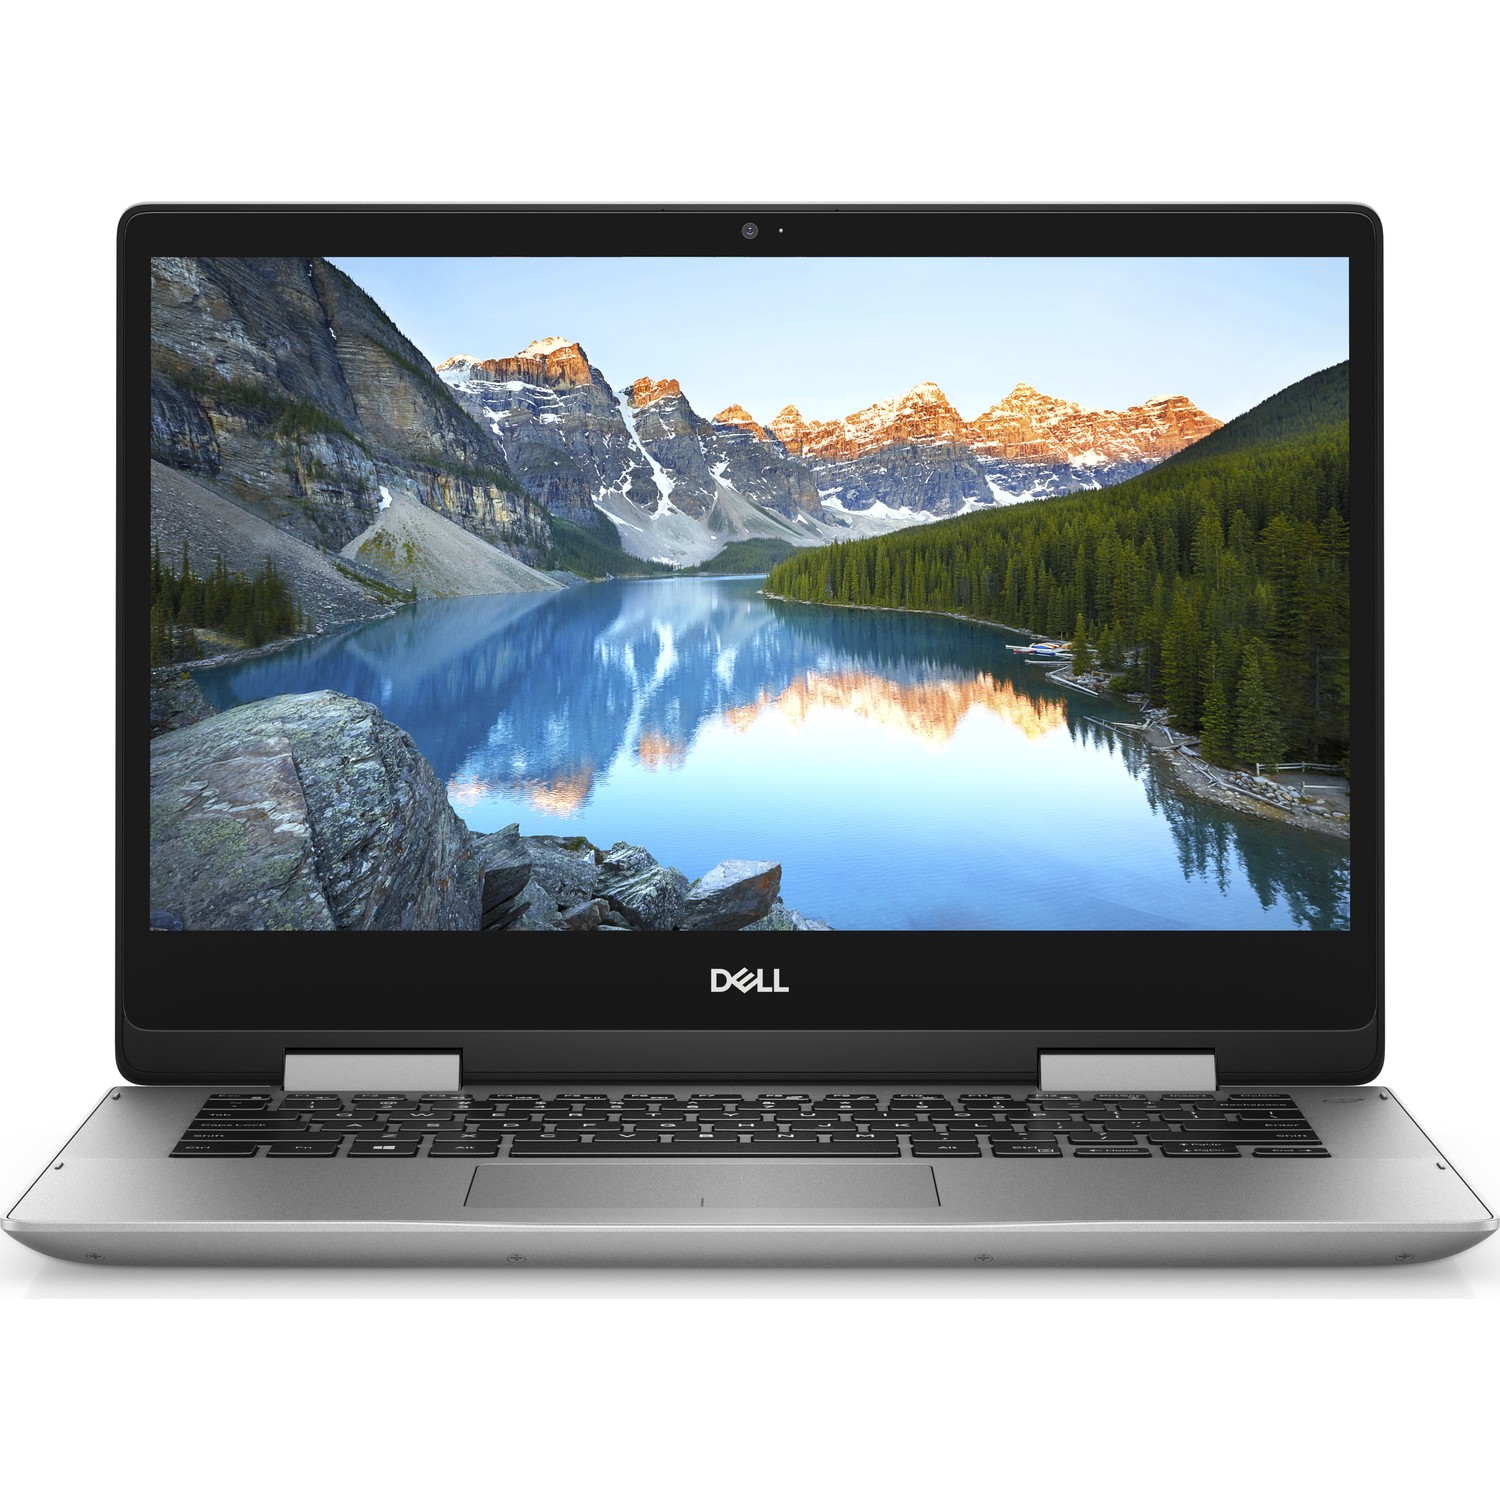 "DELL INSPIRON 5482-FHDTS56W82C I7-8650U 8GB 256GB SSD 2GB MX130 14"" FHD IPS TOUCH WIN10 NOTEBOOK"